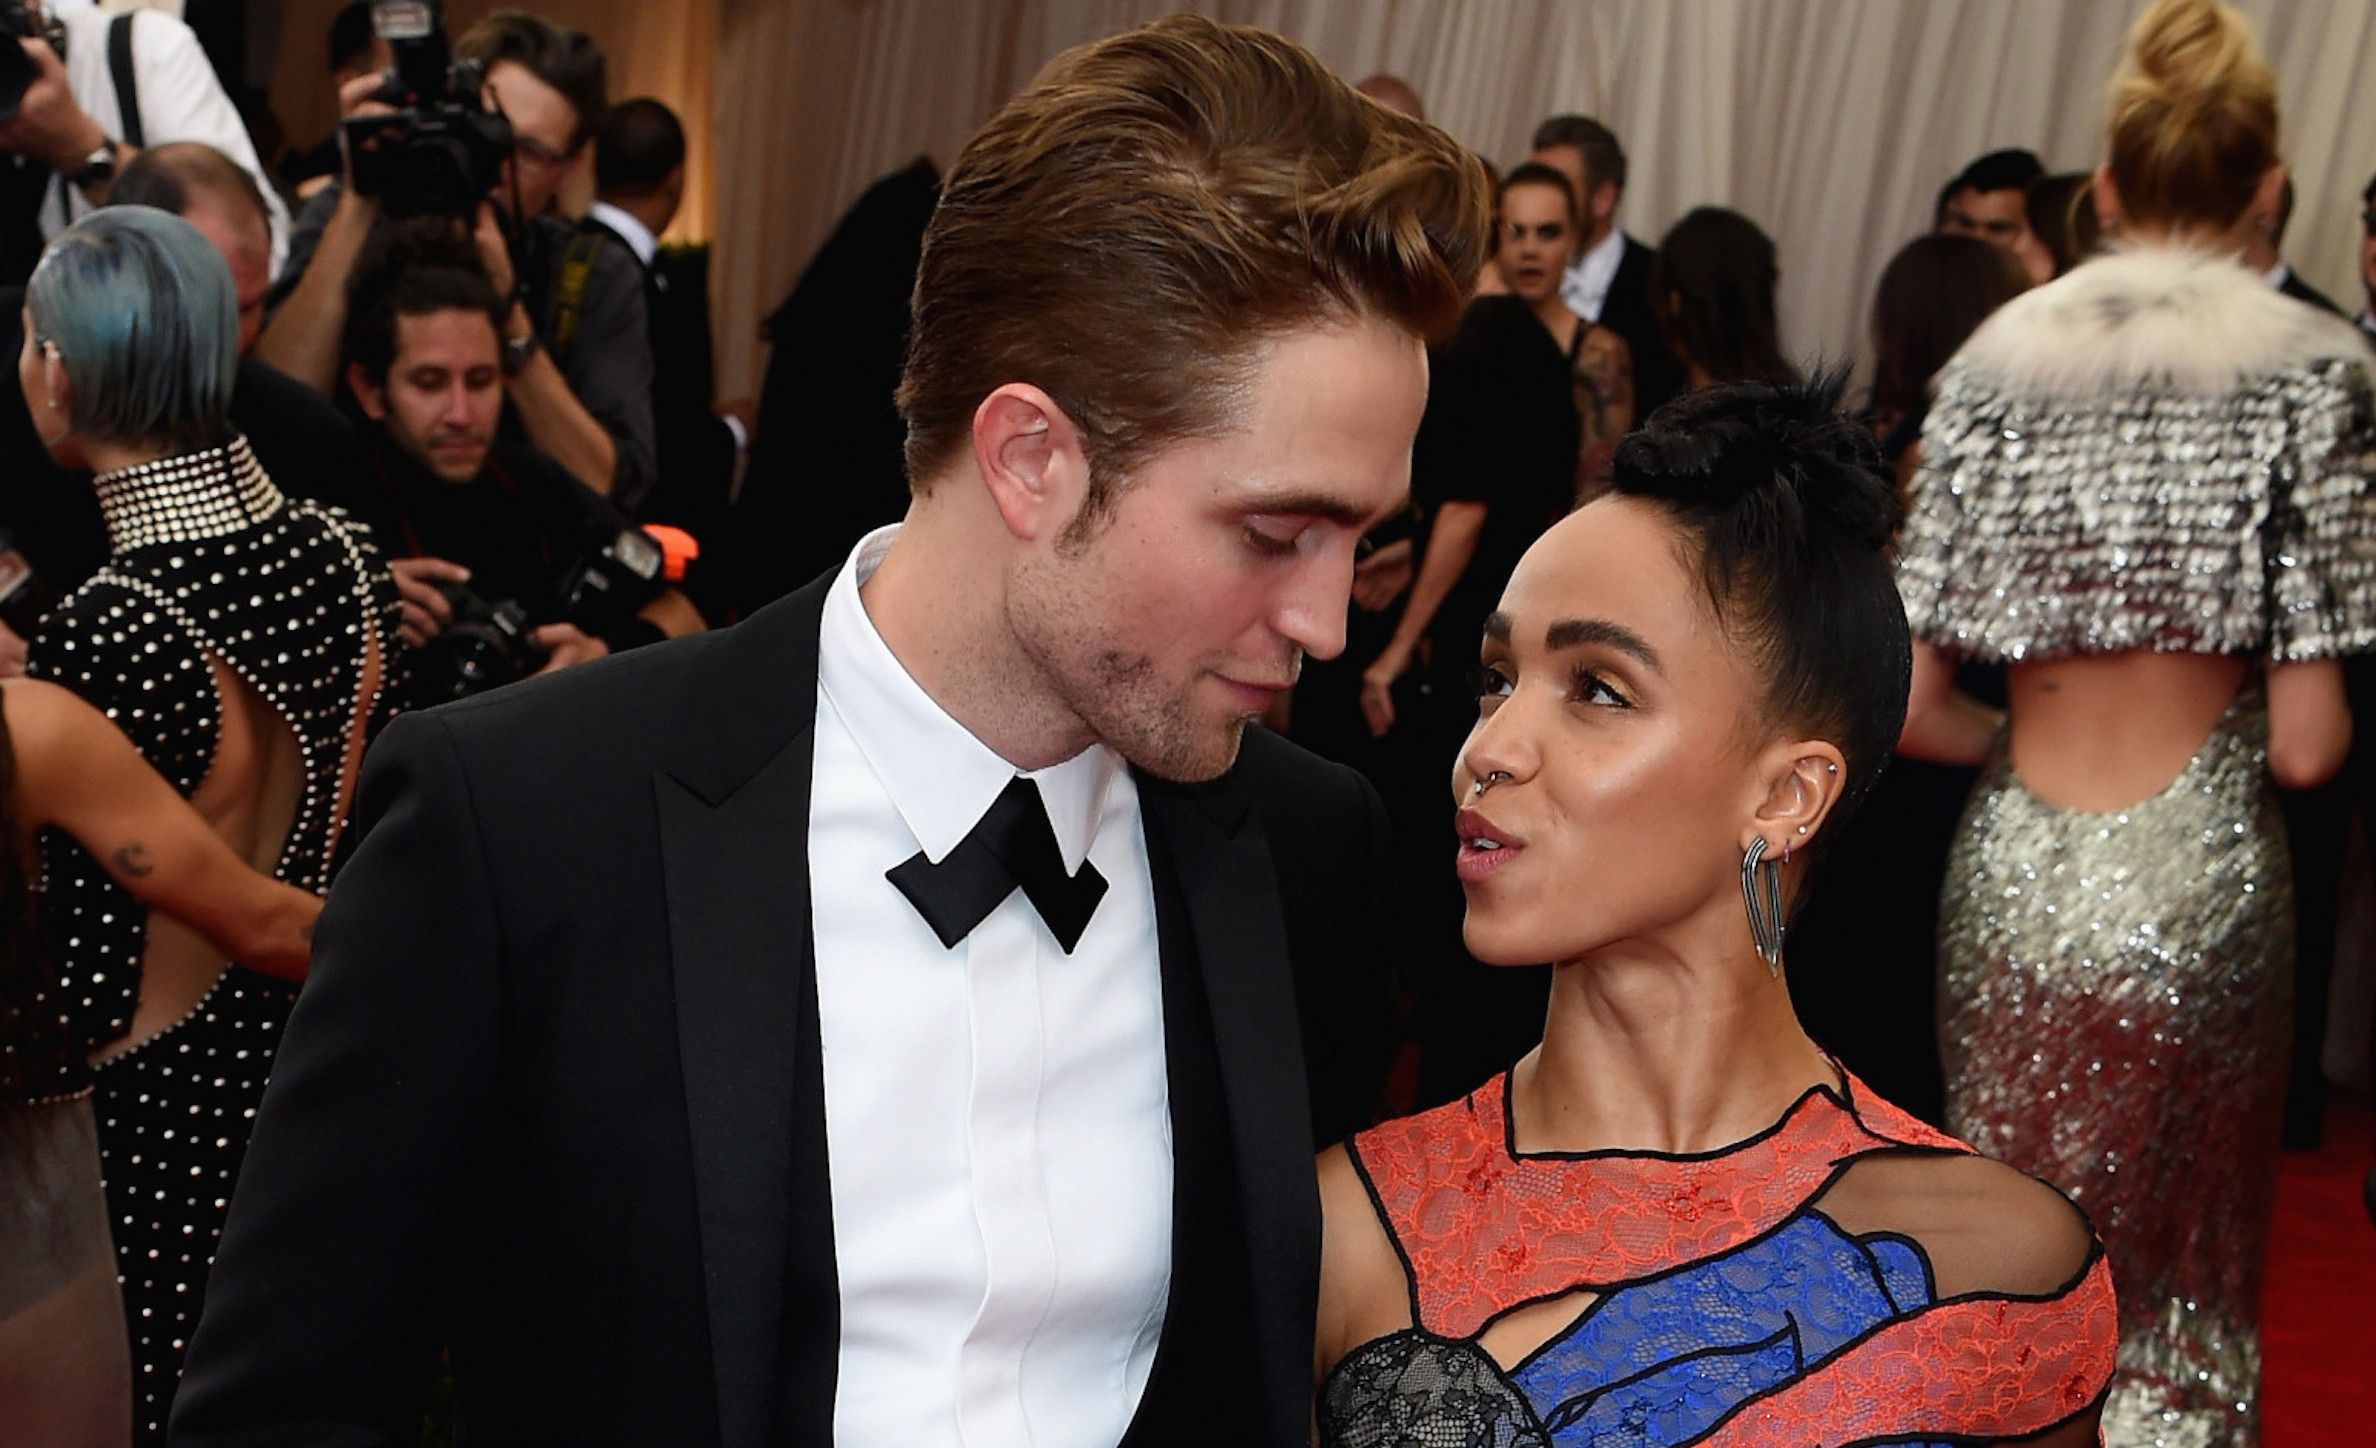 FKA Twigs engagement ring from Robert Pattinson